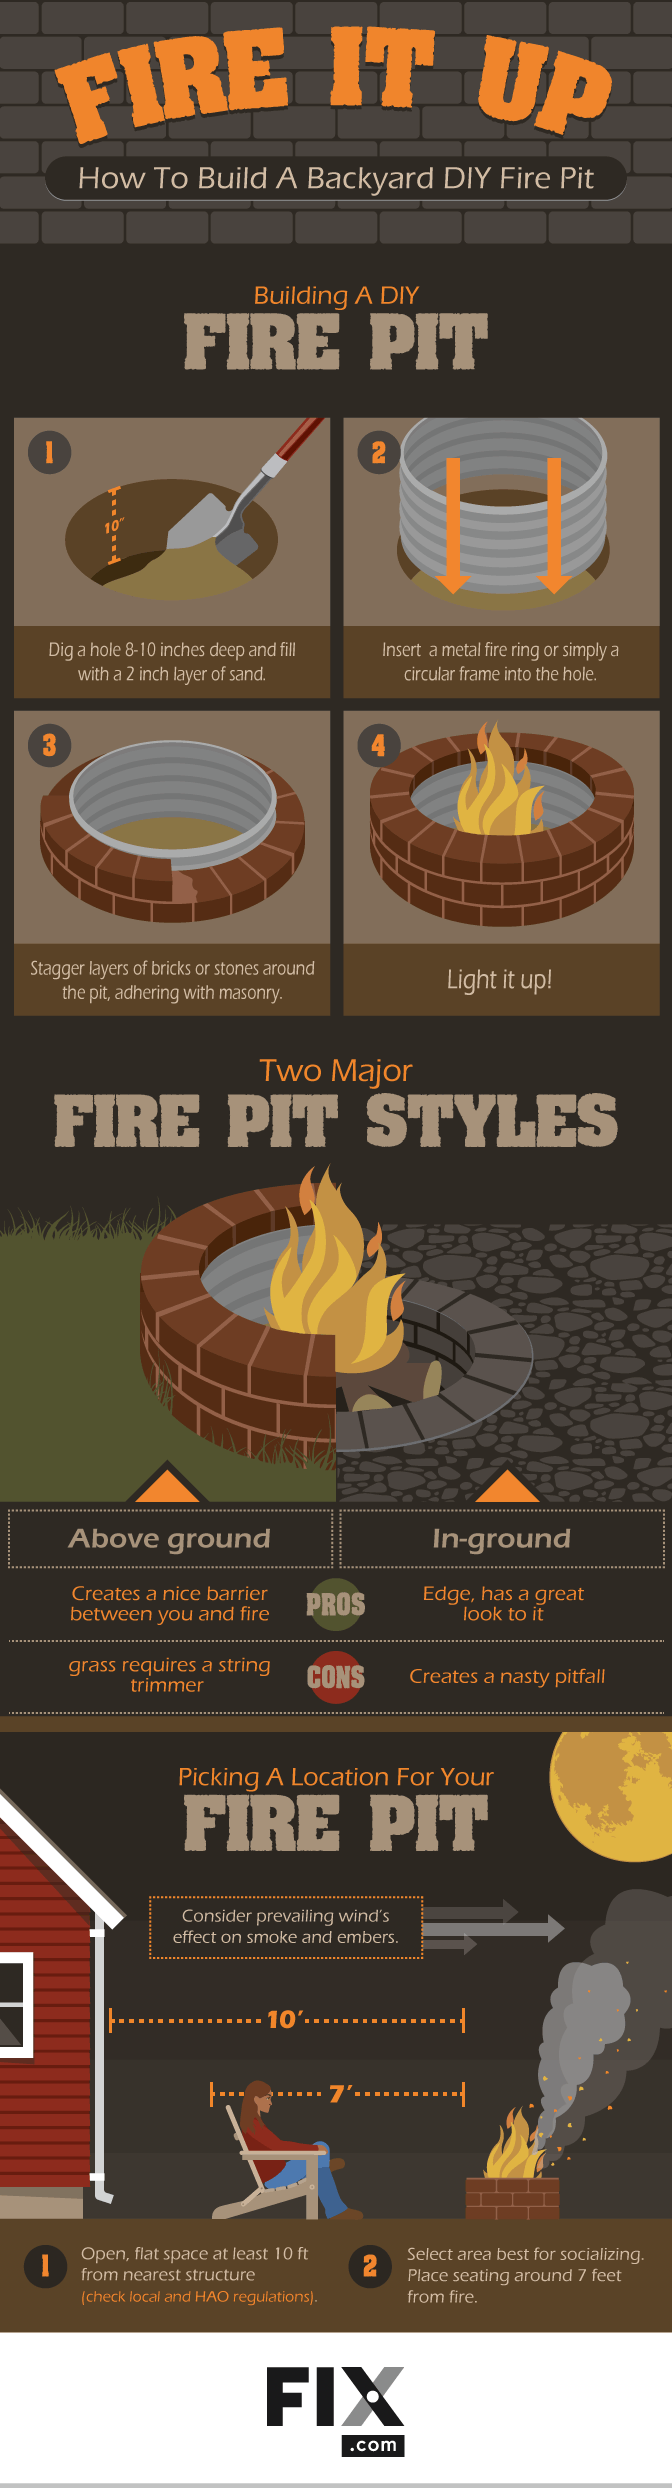 Fire It Up: How To Build A Backyard Diy Fire Pit